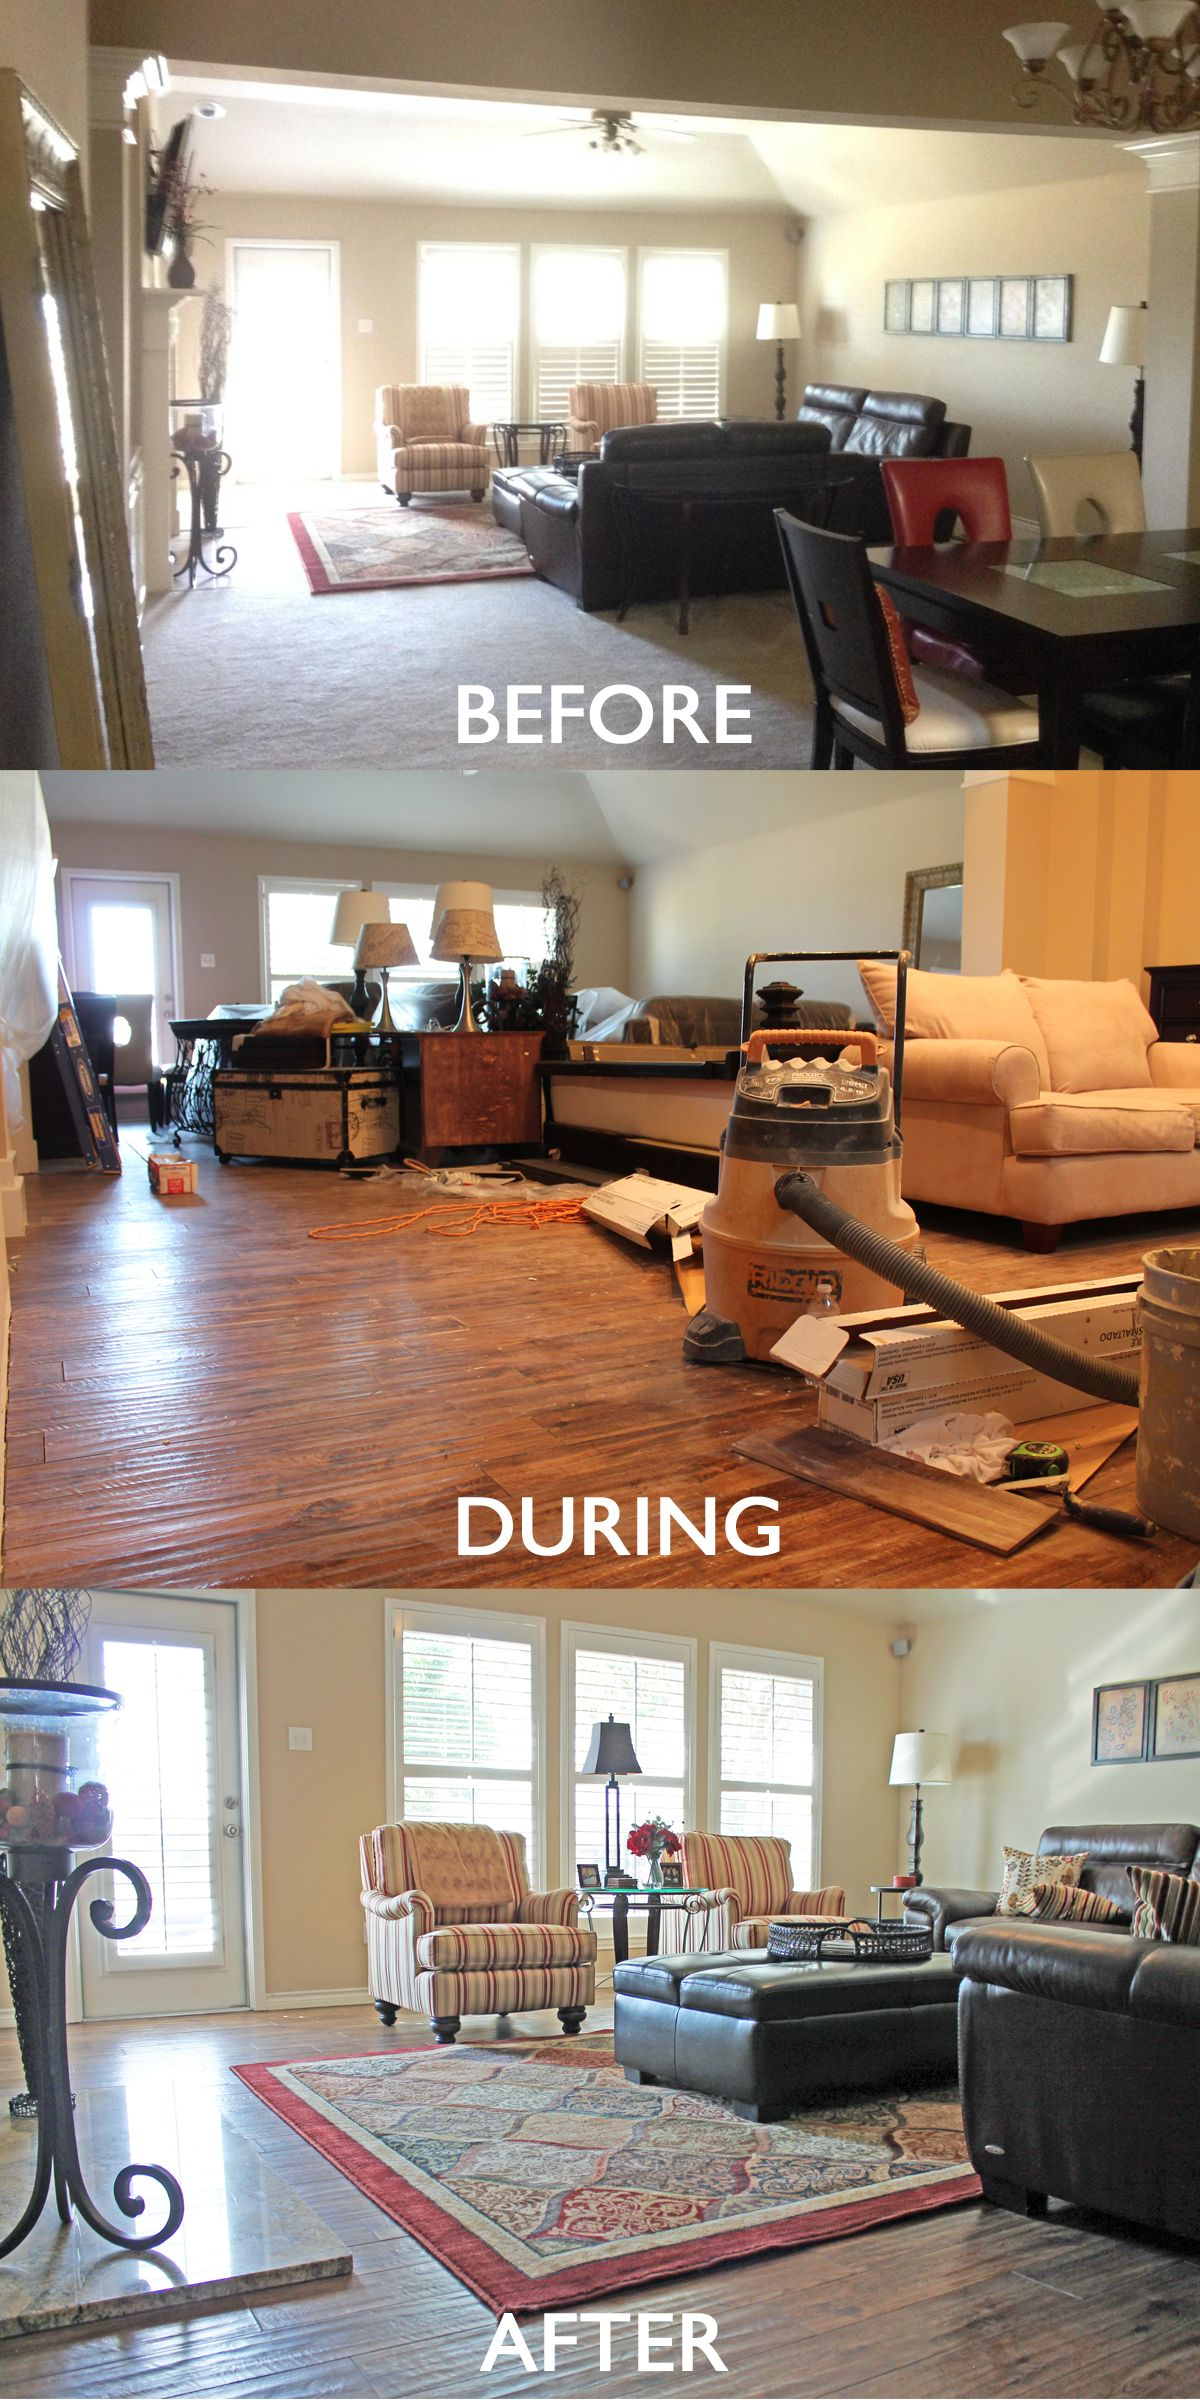 Living room remodel before and after from carpet to wood - Living room renovation before and after ...